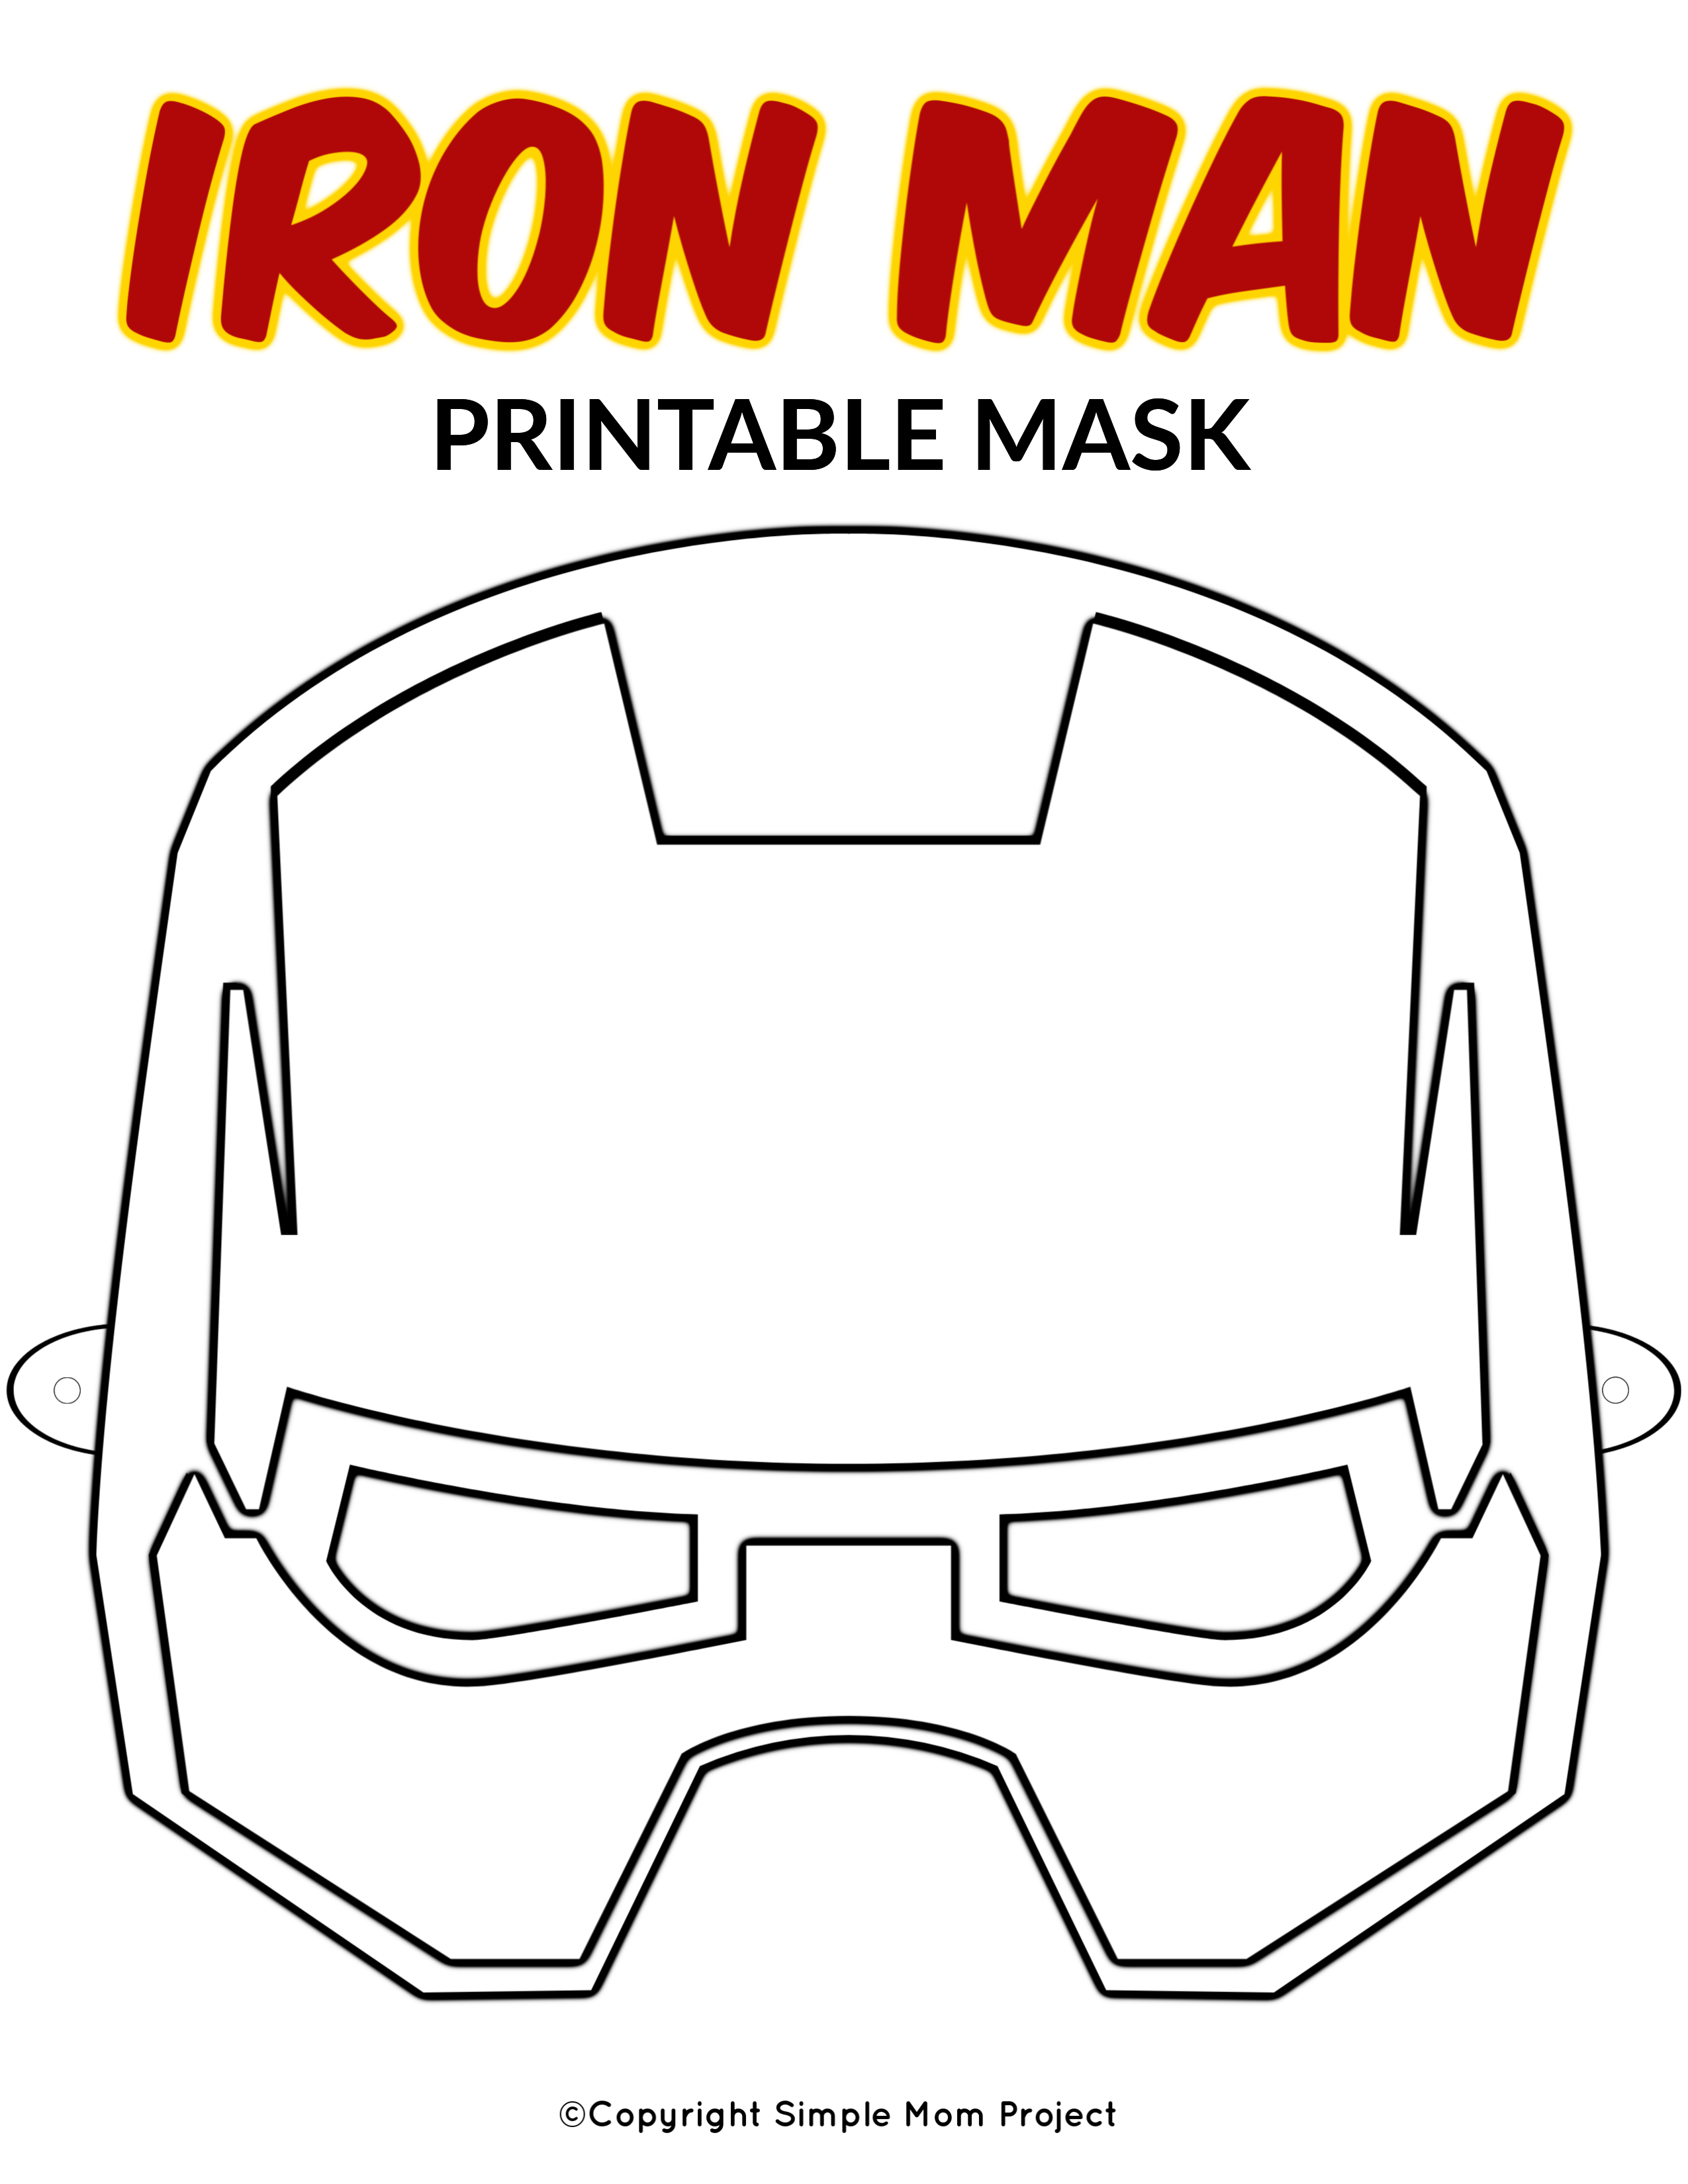 Free Printable Superhero Face Masks For Kids - Simple Mom Project - Free Printable Ironman Mask